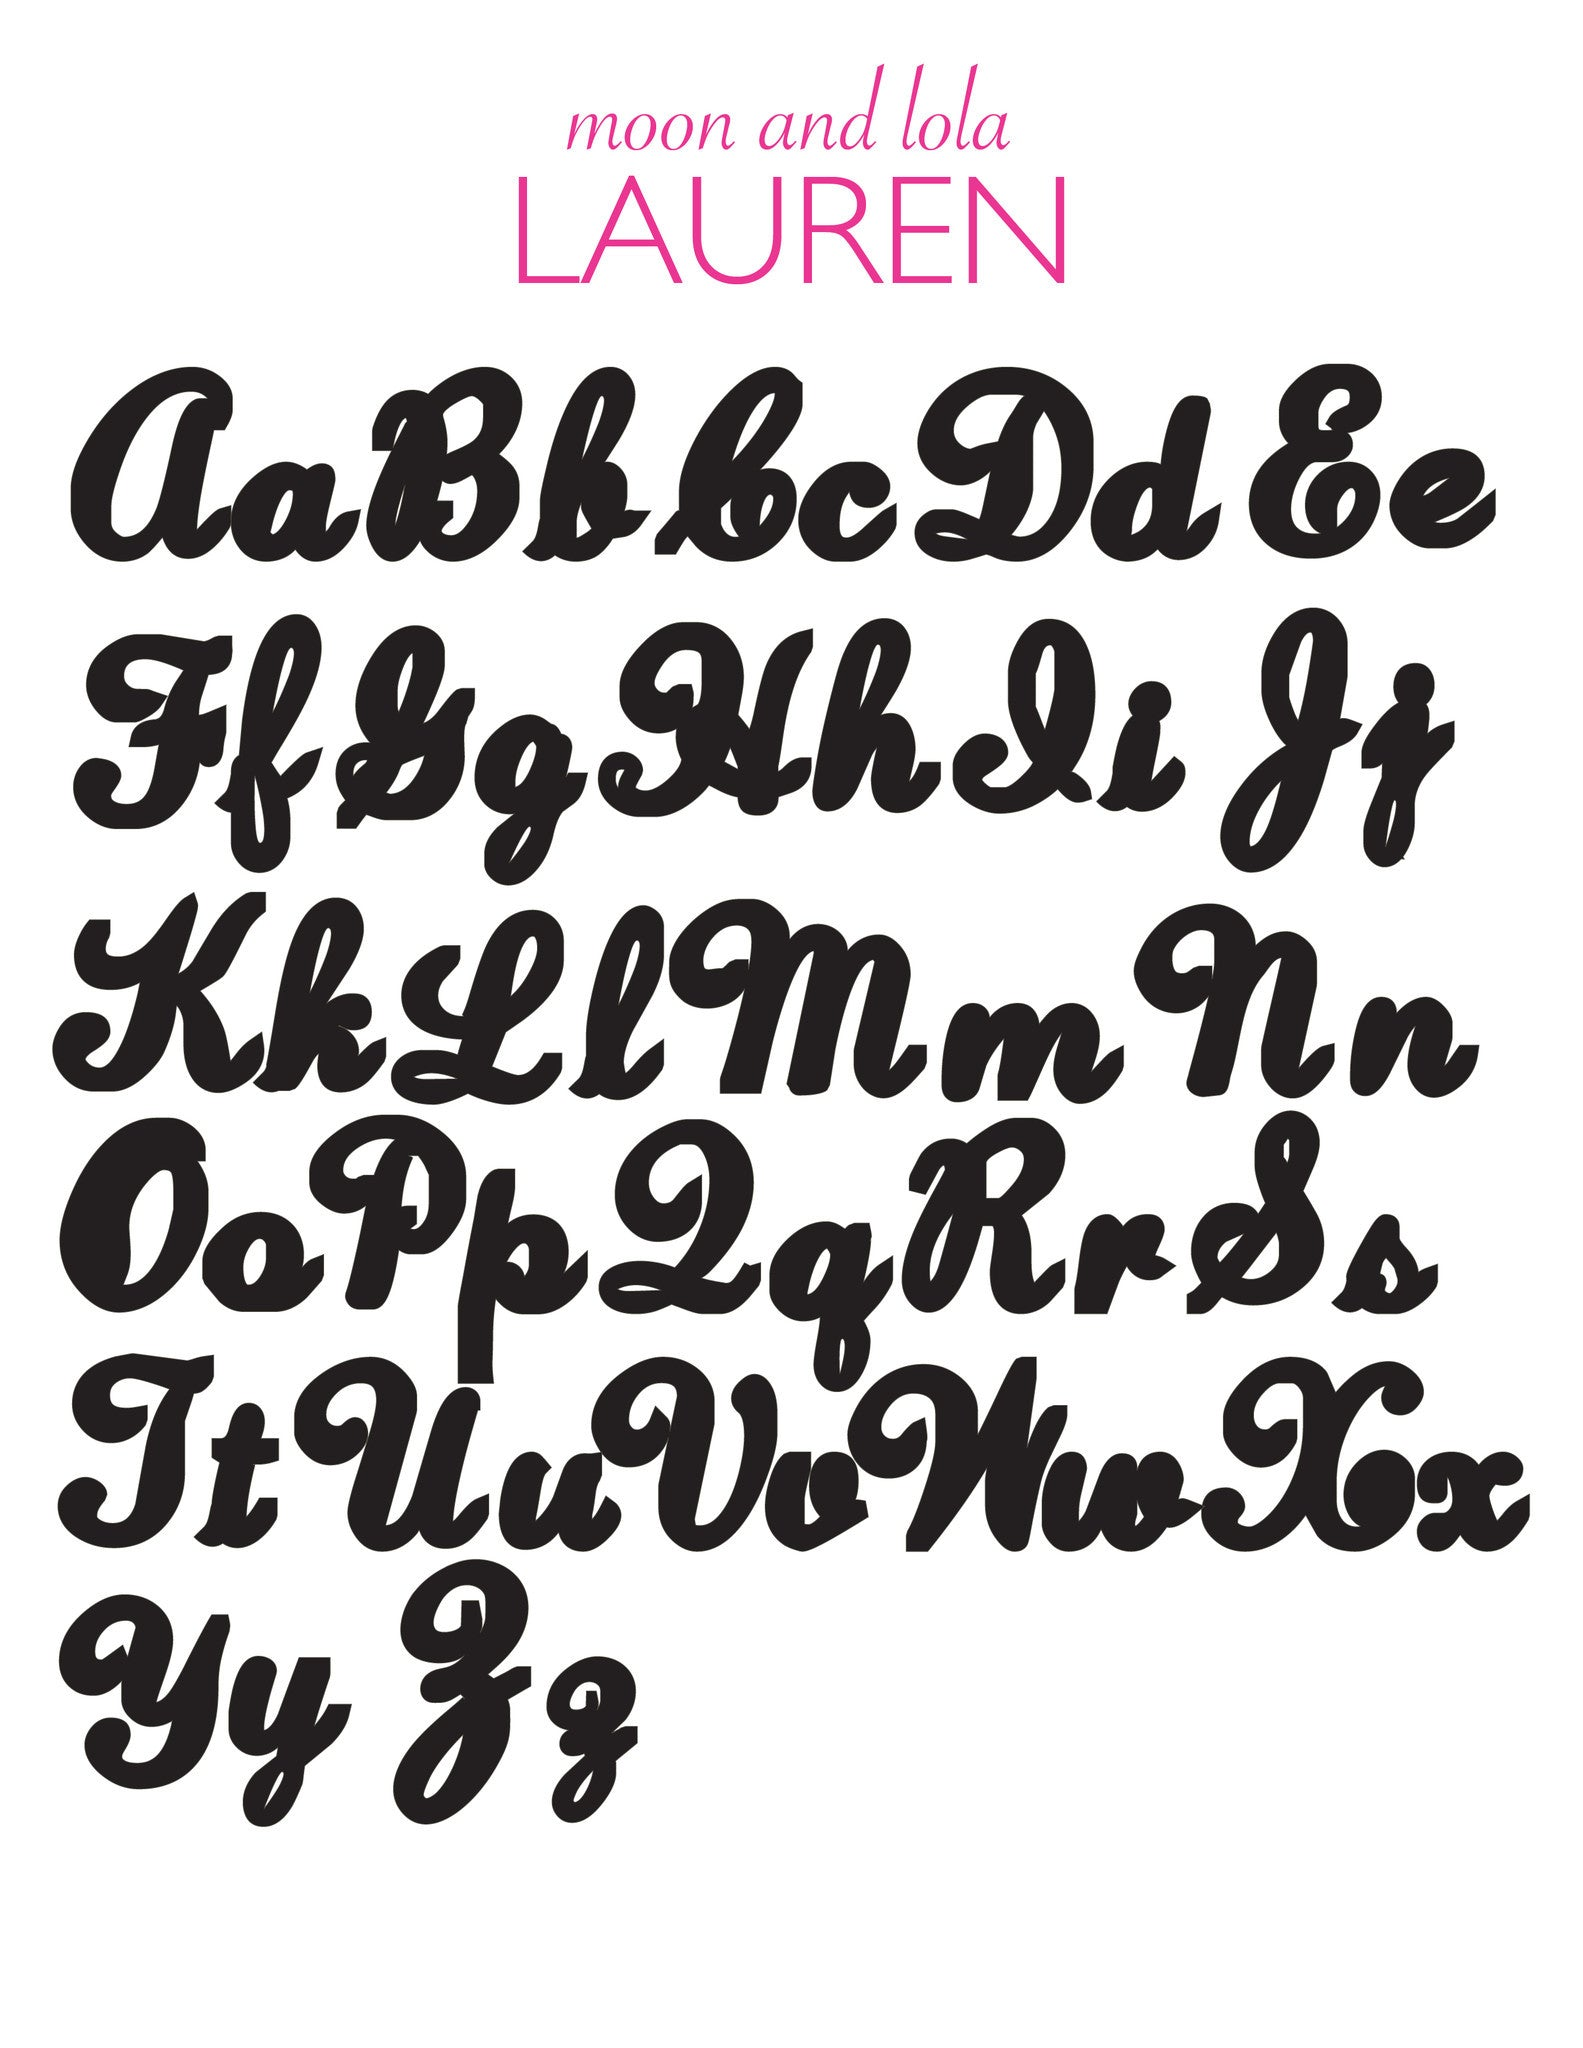 I found this at #moonandlola! - Acrylic Nameplate Lauren Font